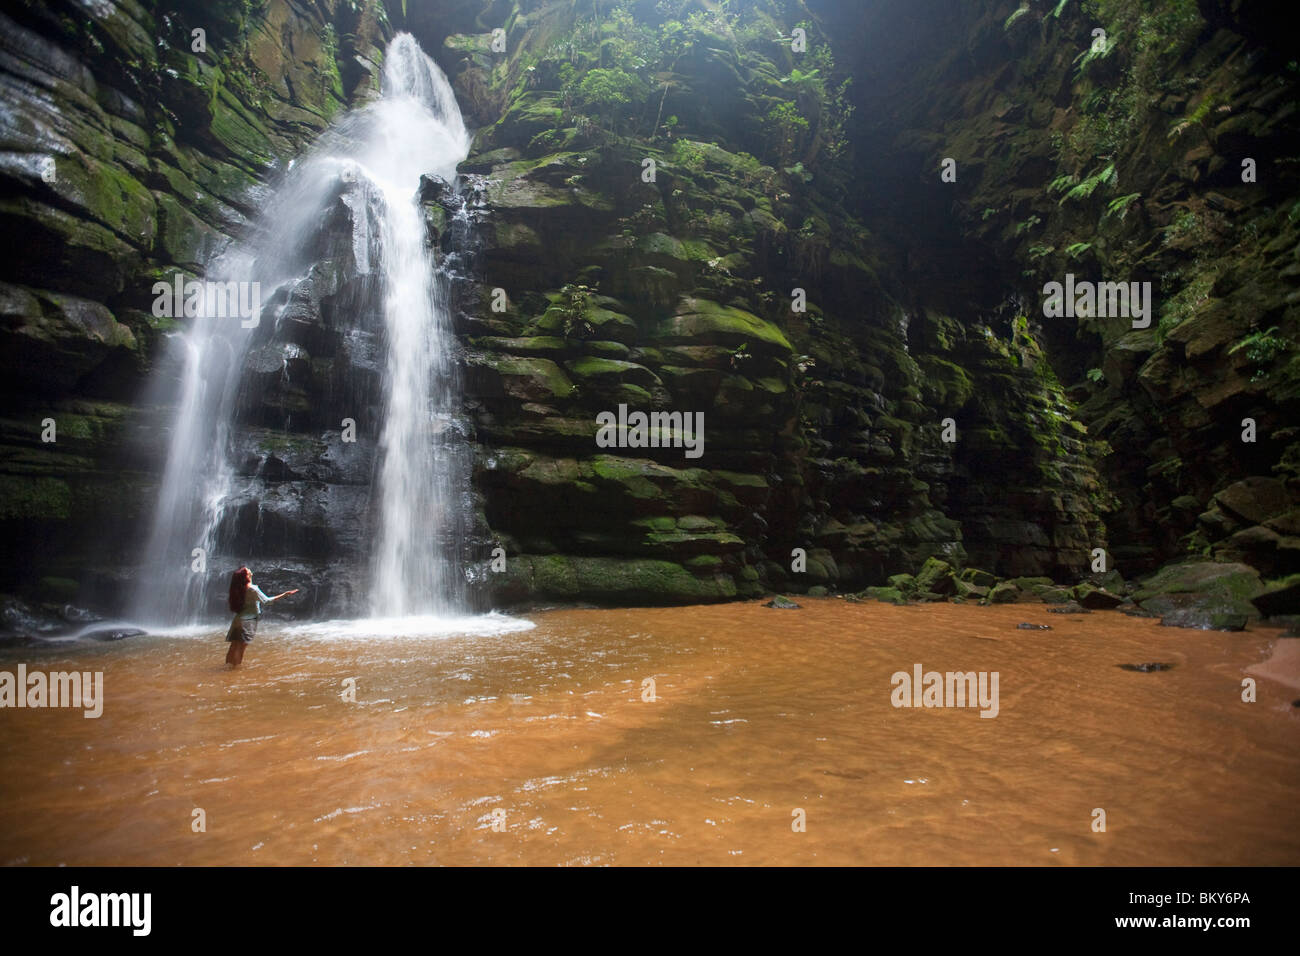 A woman observes a waterfall in Brazil. - Stock Image